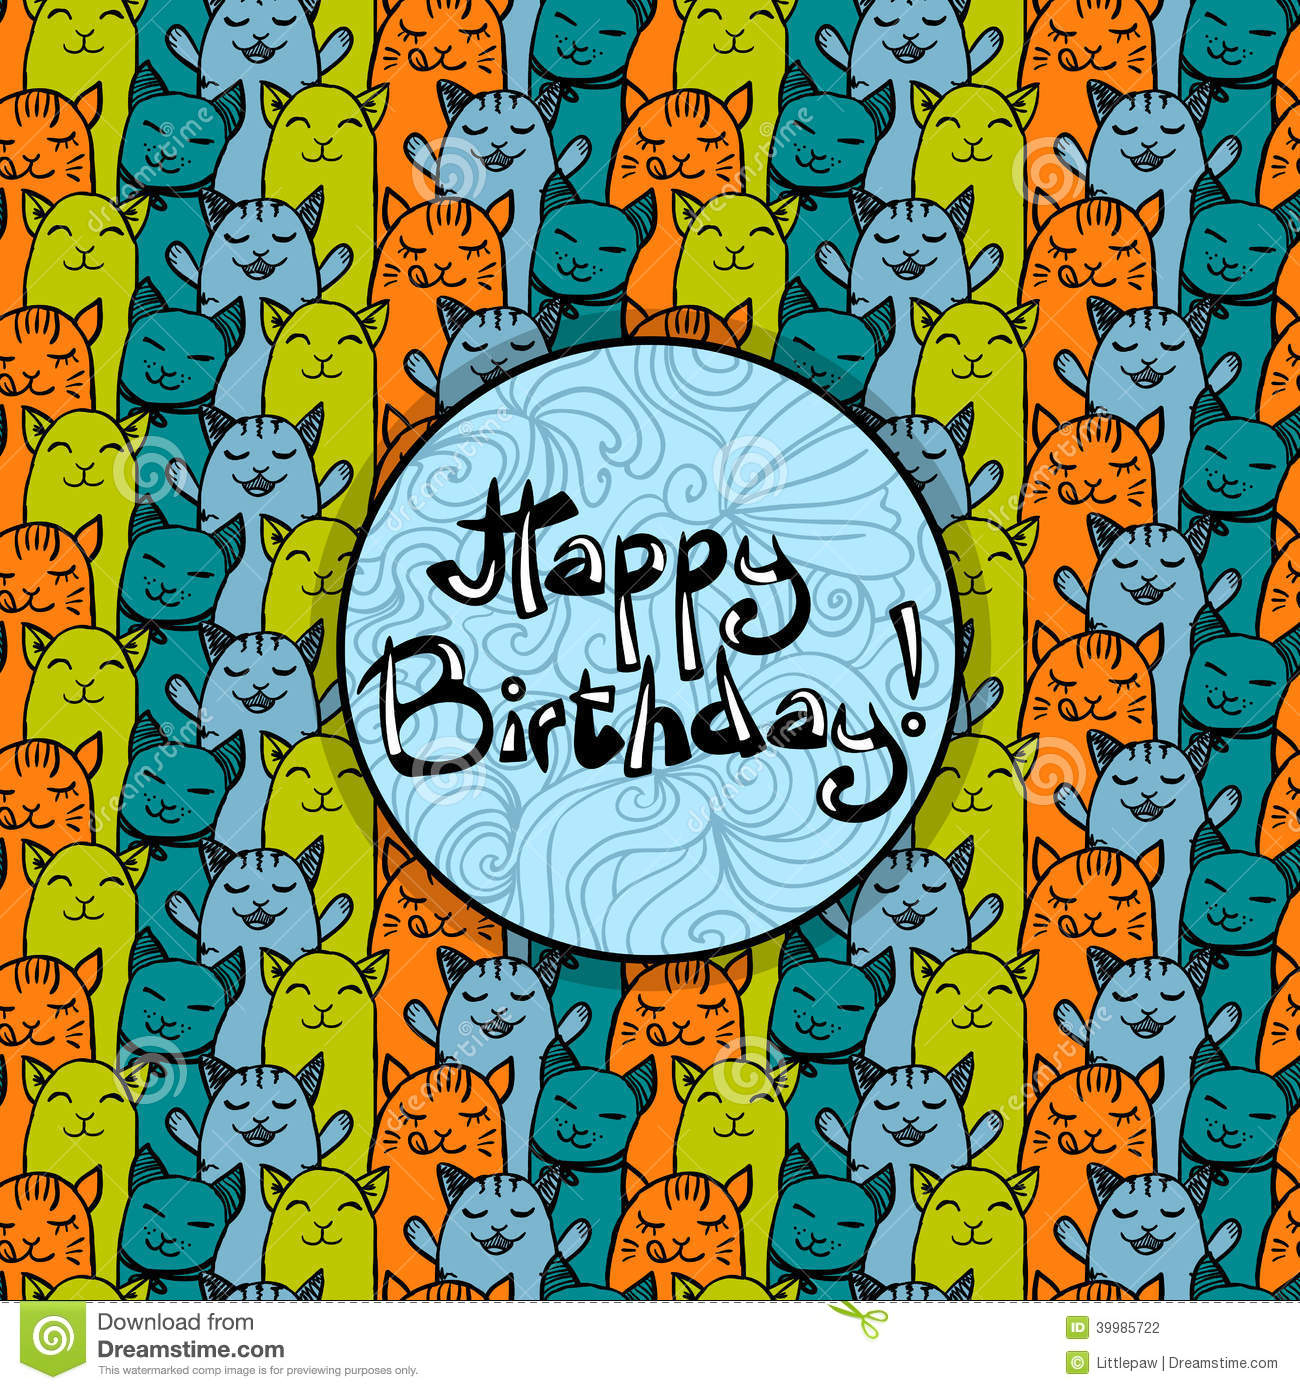 Happy Birthday Card With Cute Colorful Cats Background